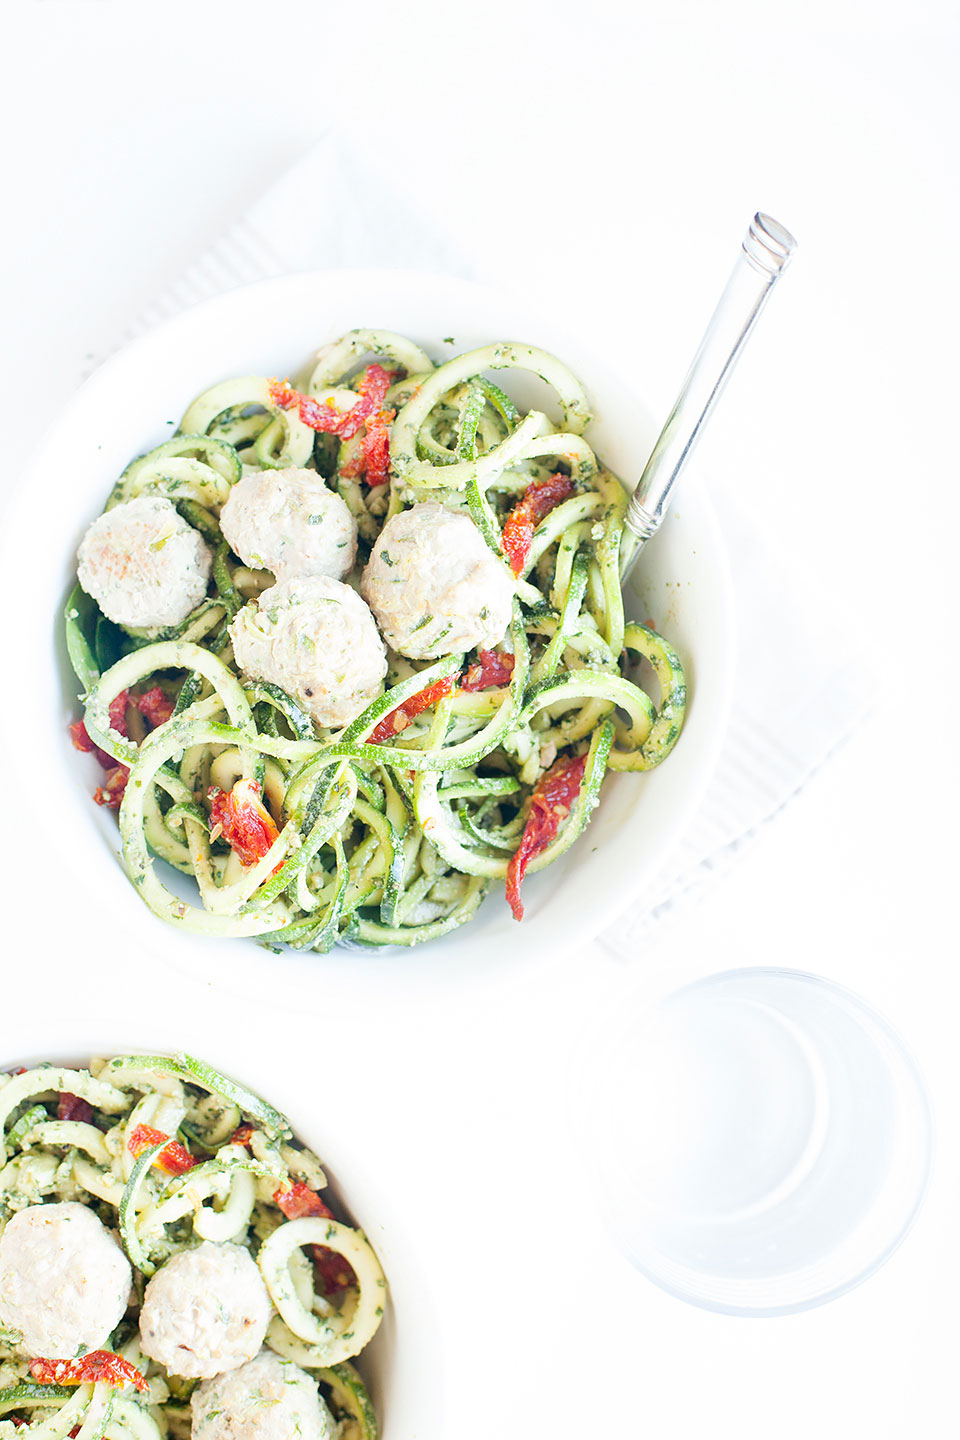 Pesto Zucchini Noodle Bowls with Sun-Dried Tomatoes | An Easy Gluten-Free and Paleo Recipe | Loveleaf Co.